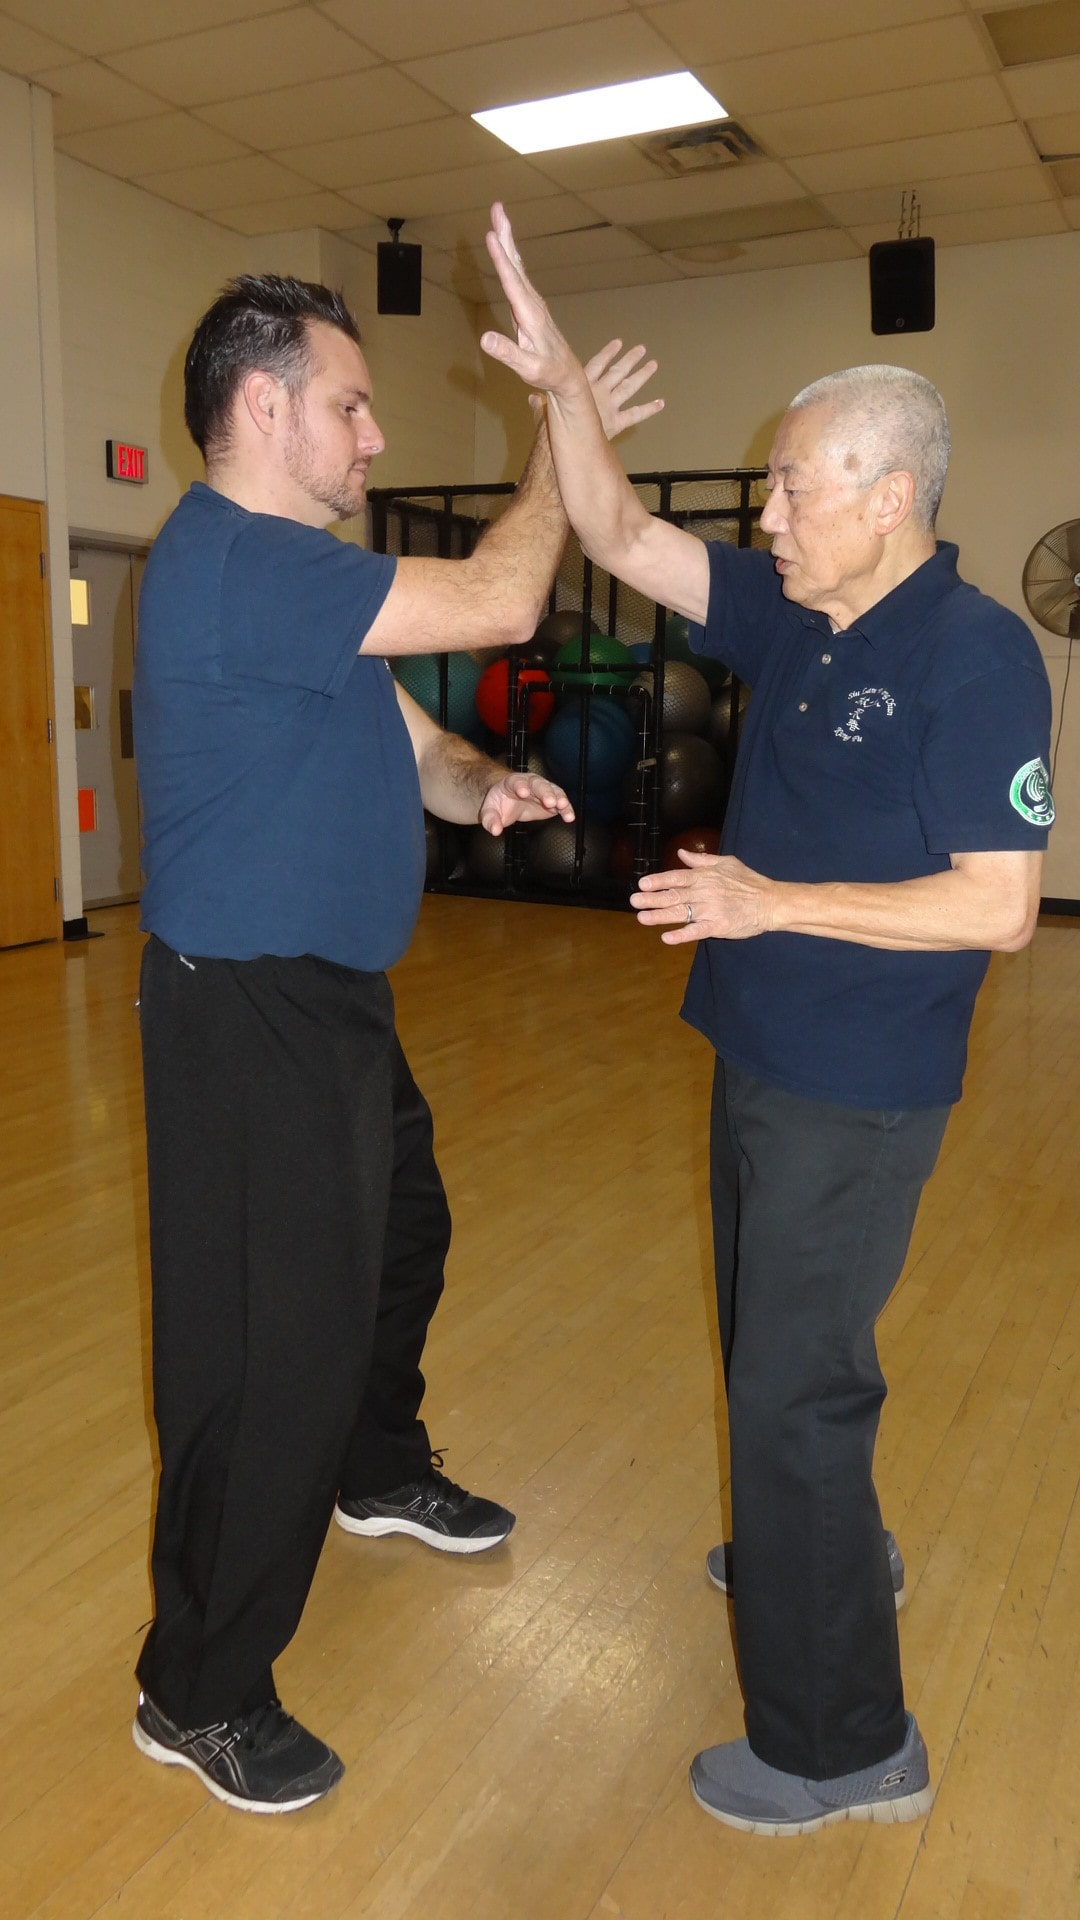 Brock's Confucius Institute offers free Weng Chun Kung Fu trial session